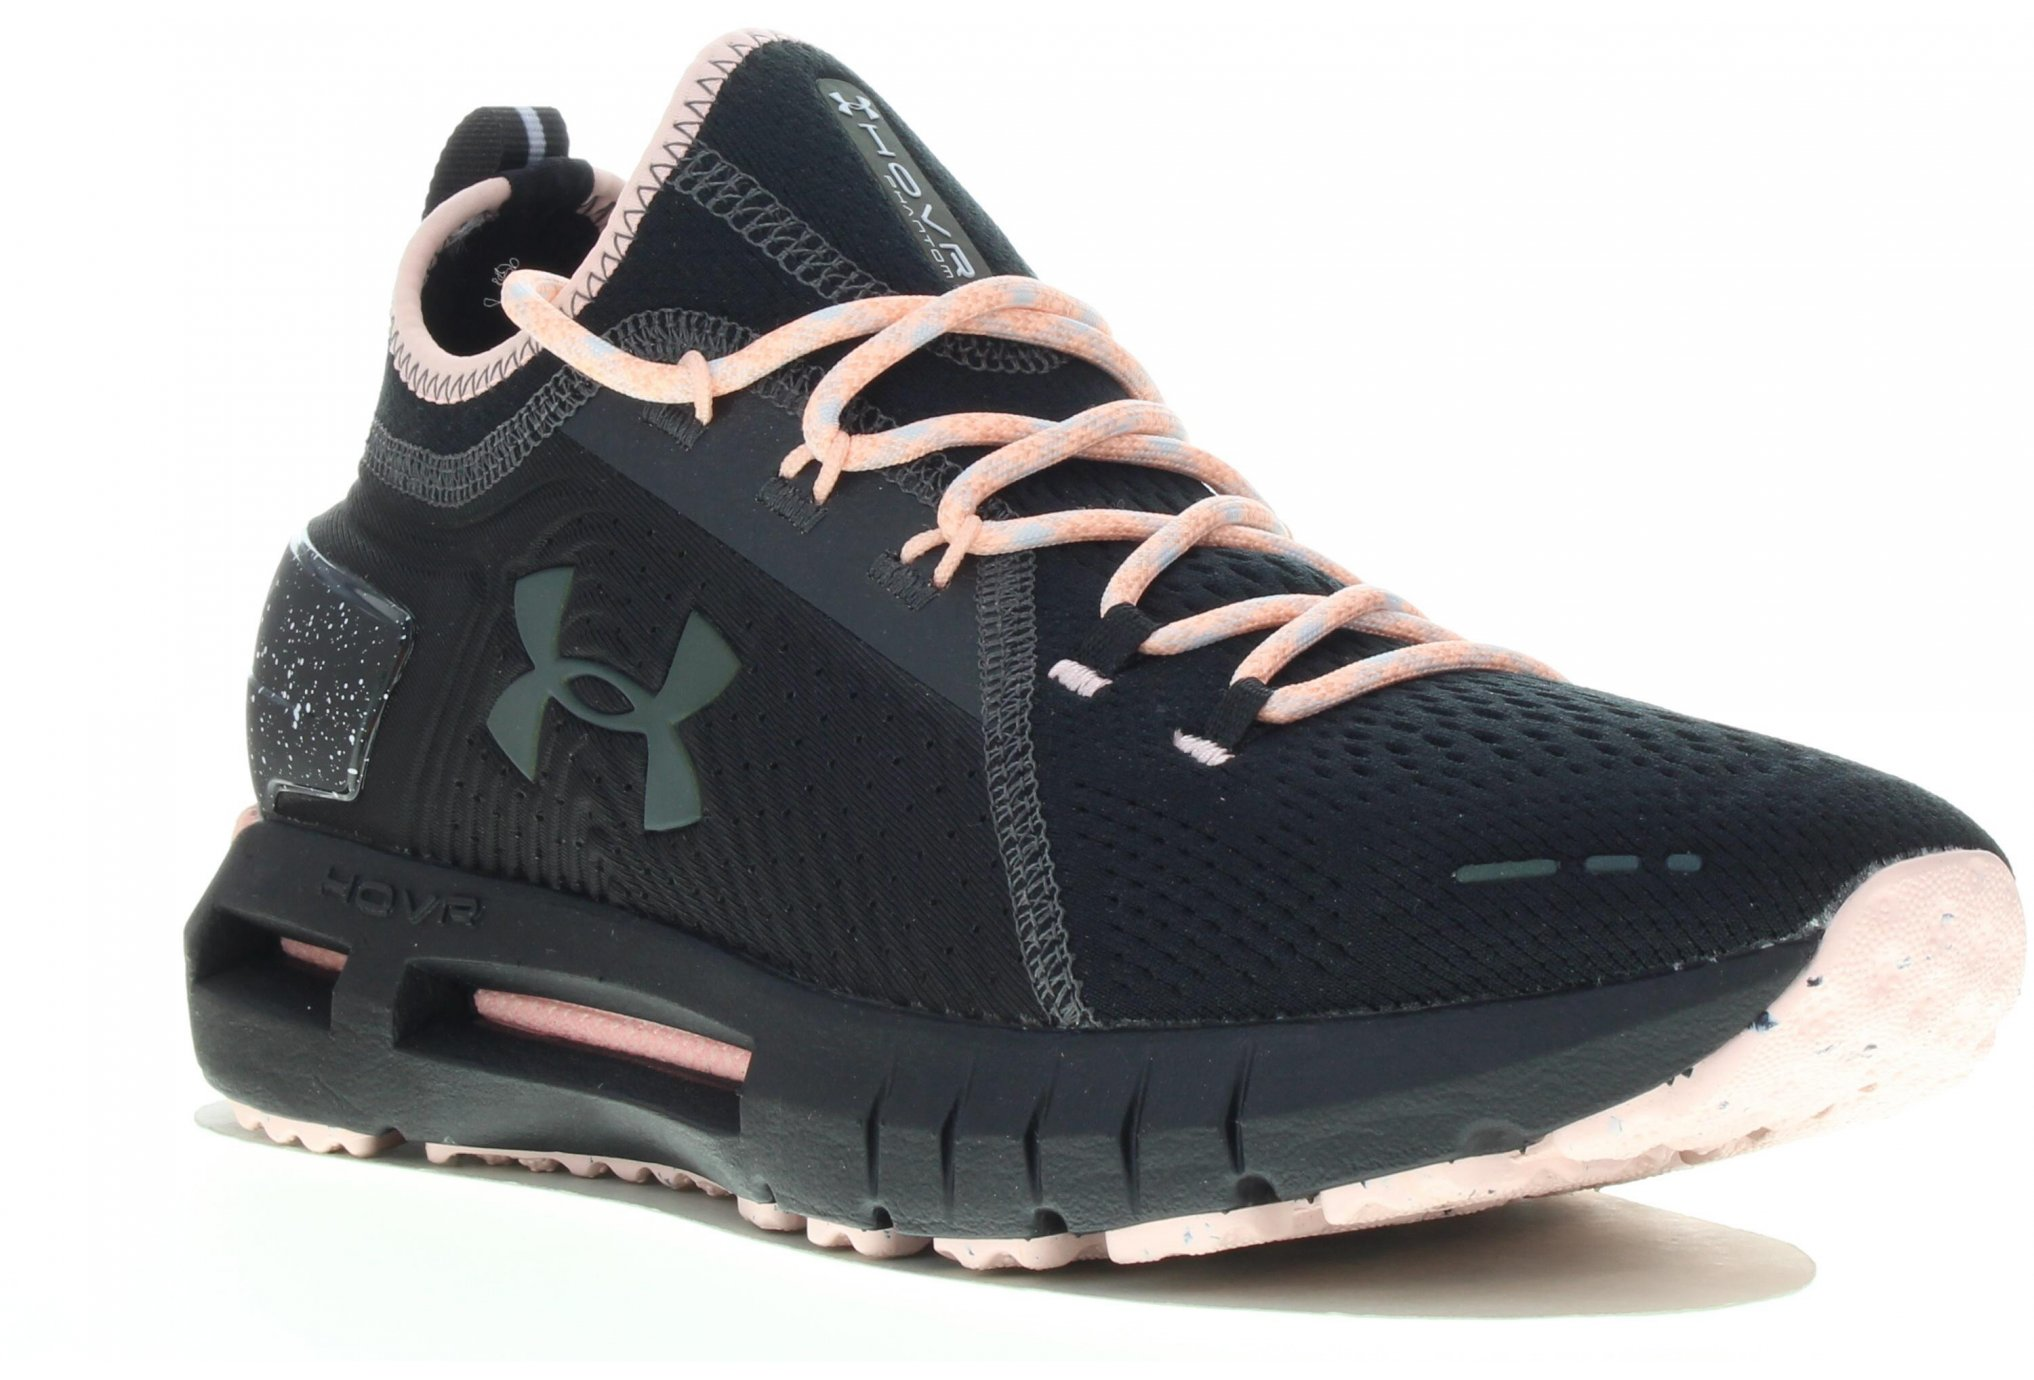 Under Armour HOVR Phantom SE Trek Chaussures running femme